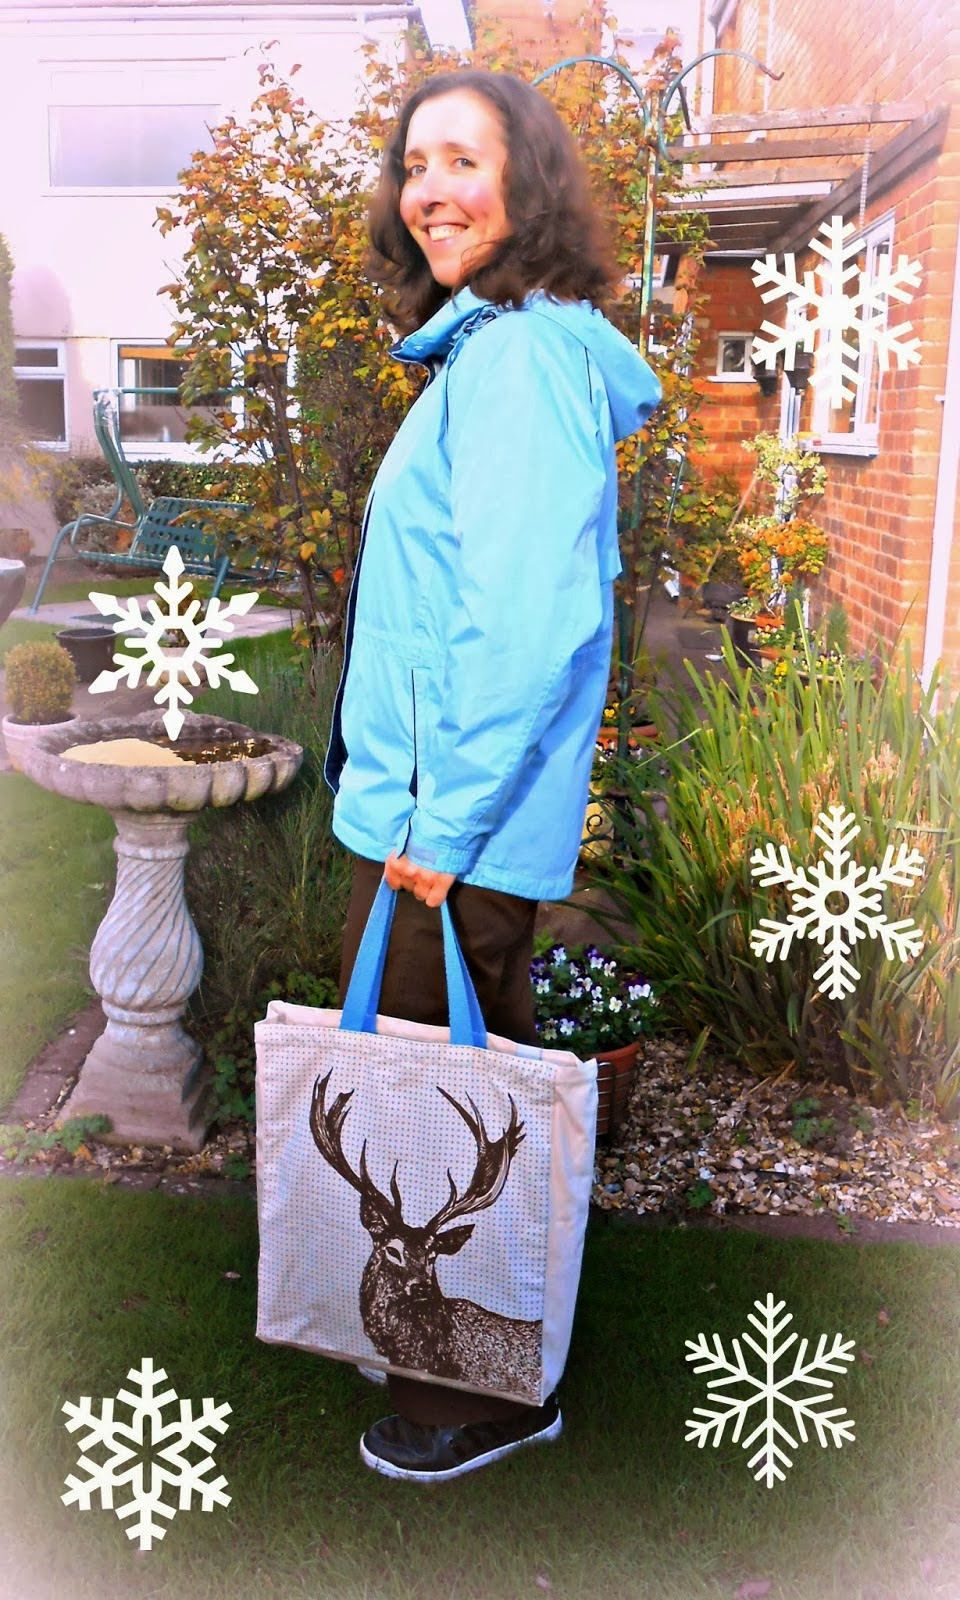 WWF Deer Tote Bag with woman